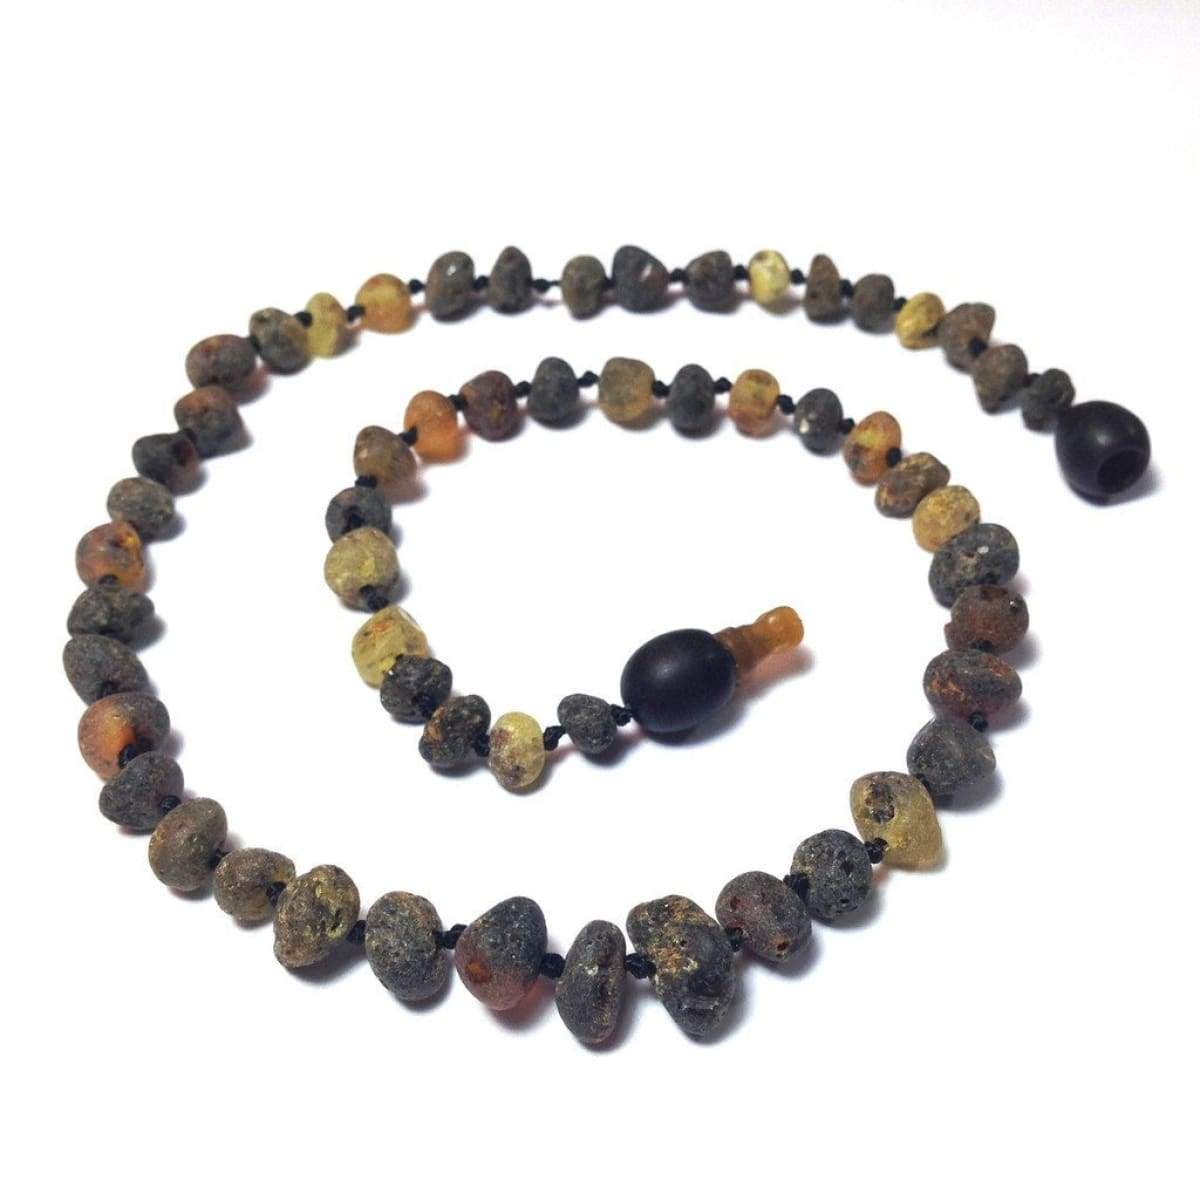 Baltic Amber Asteroid - 12 Necklace - Pop Clasp - Baltic Amber Jewelry